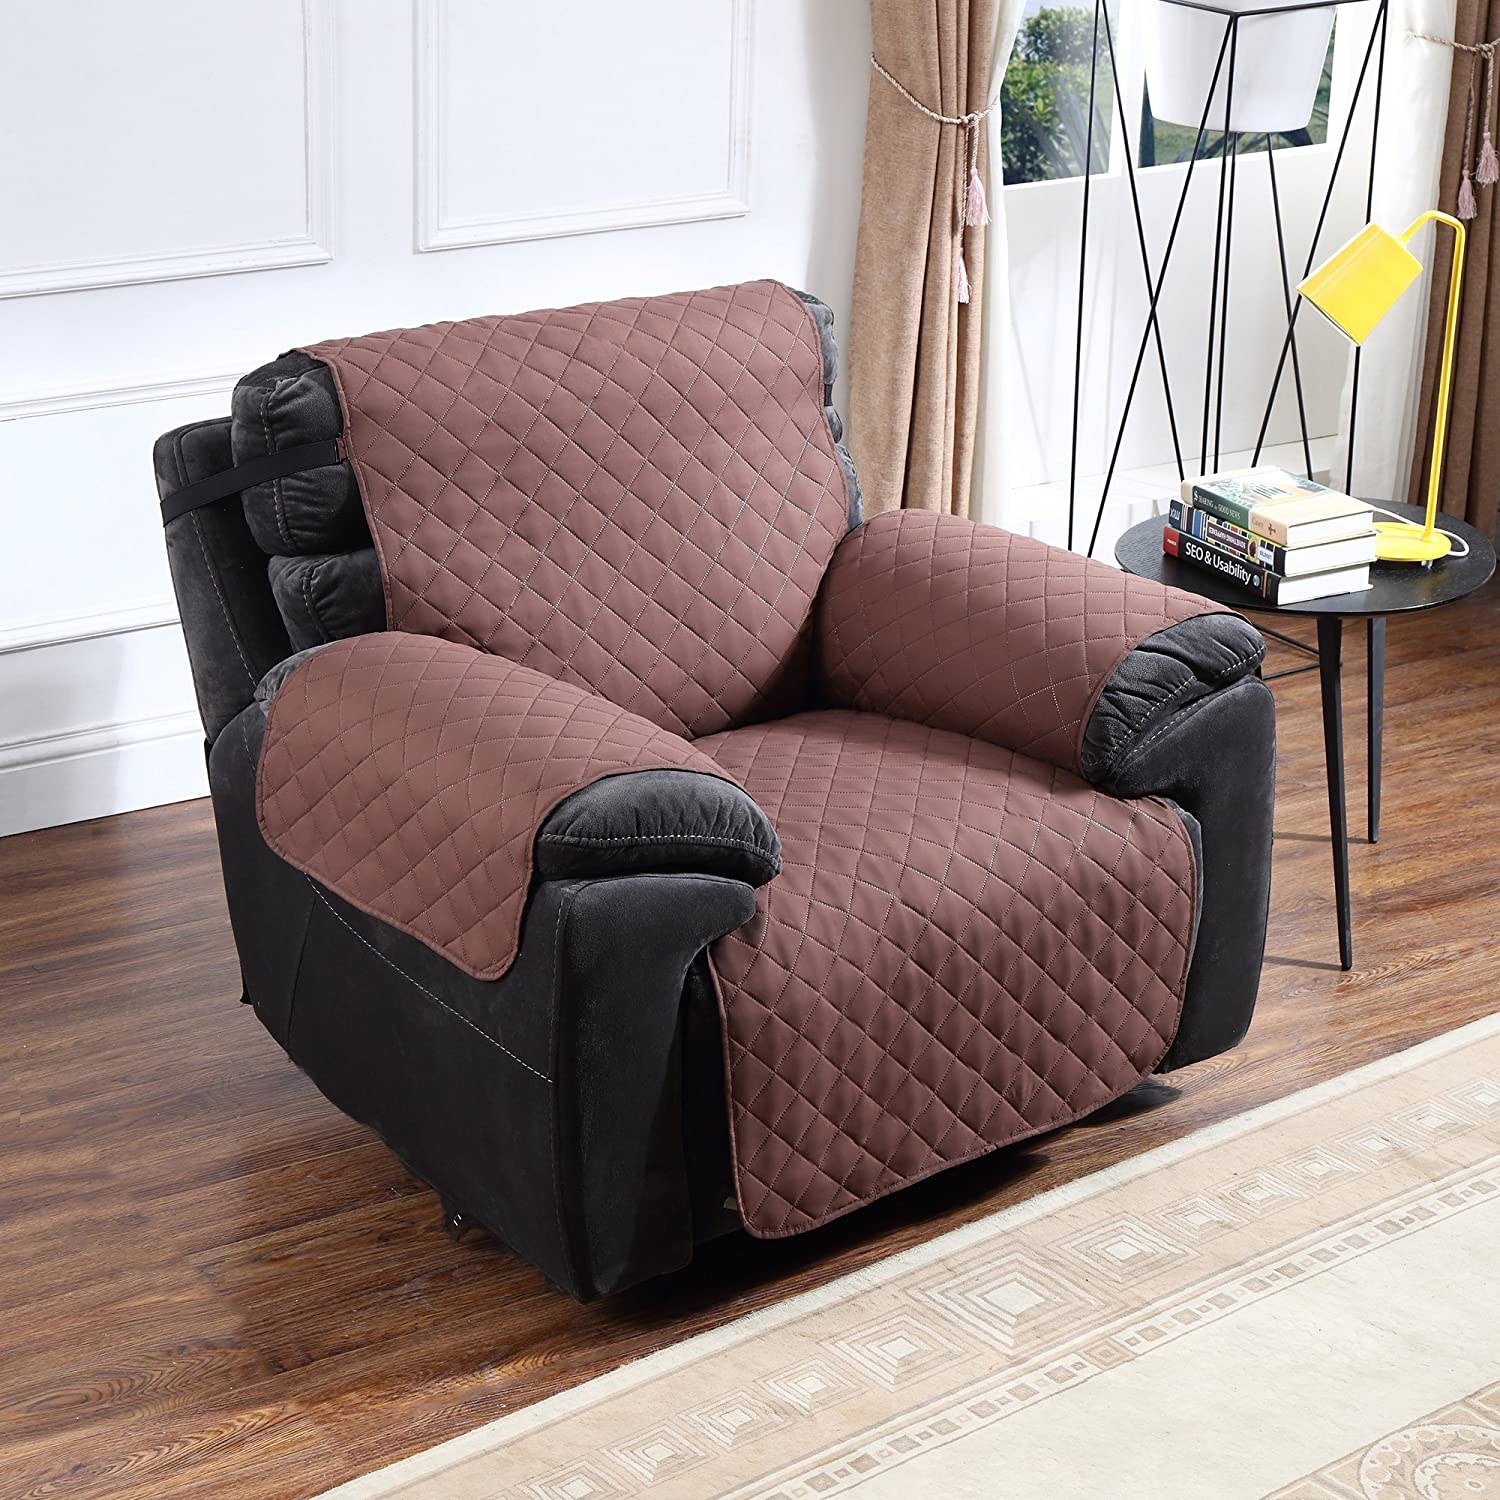 Argstar Reversible Recliner Cover Chair Protector Slipcover Easy Clean Chocolate/Natural